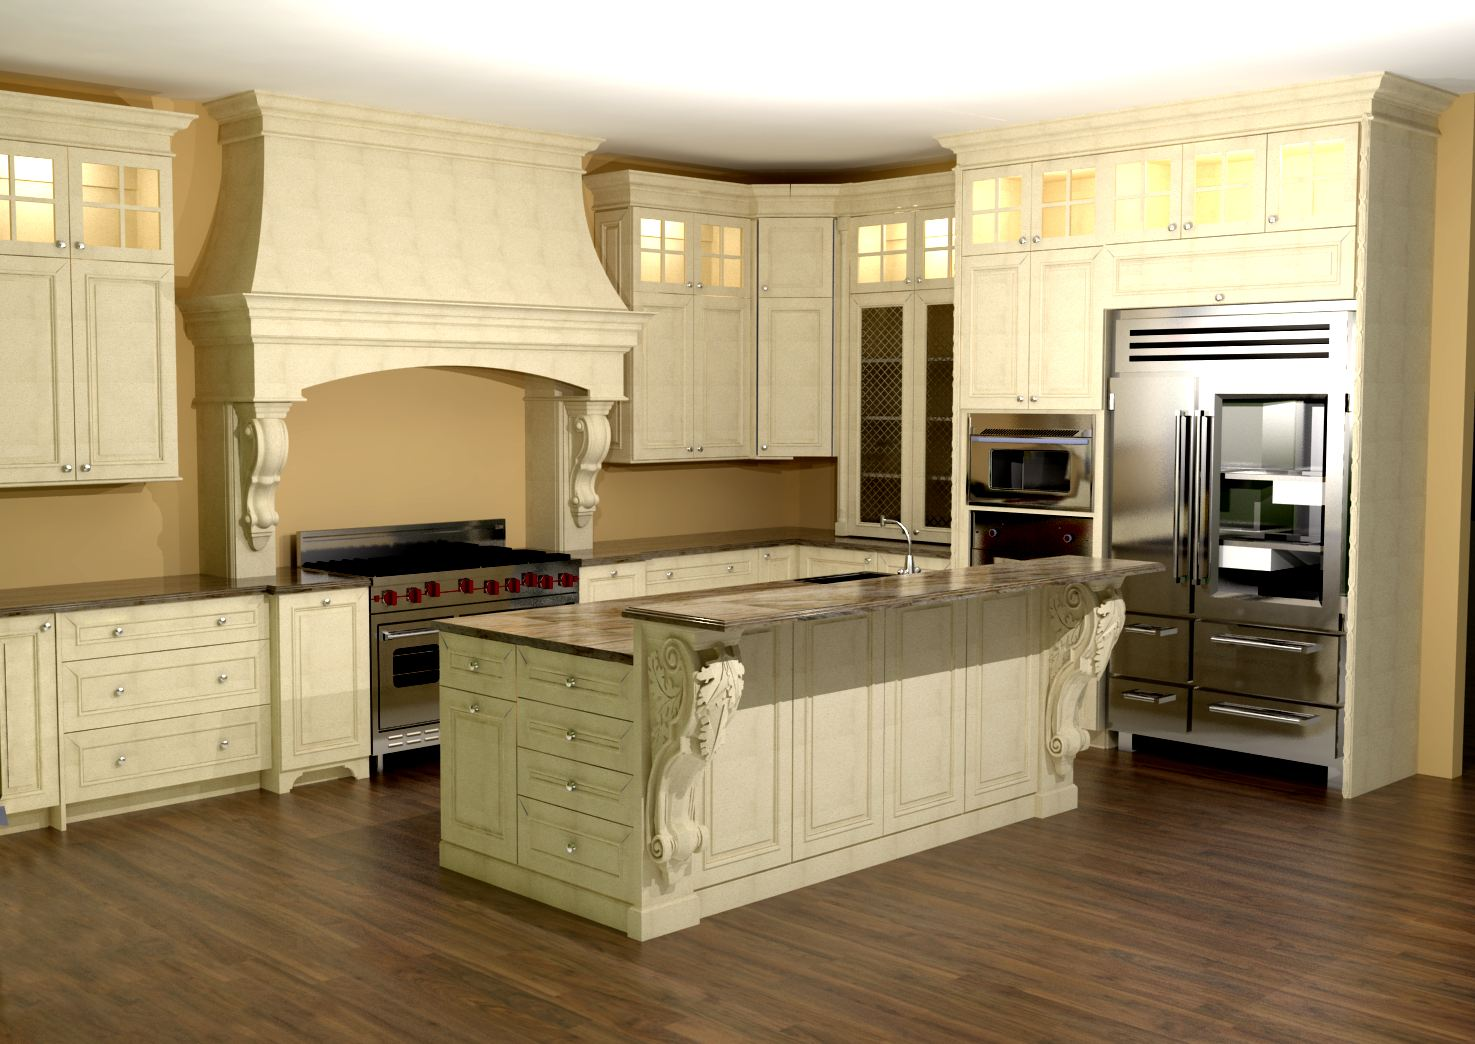 Large Kitchen Island Corbels